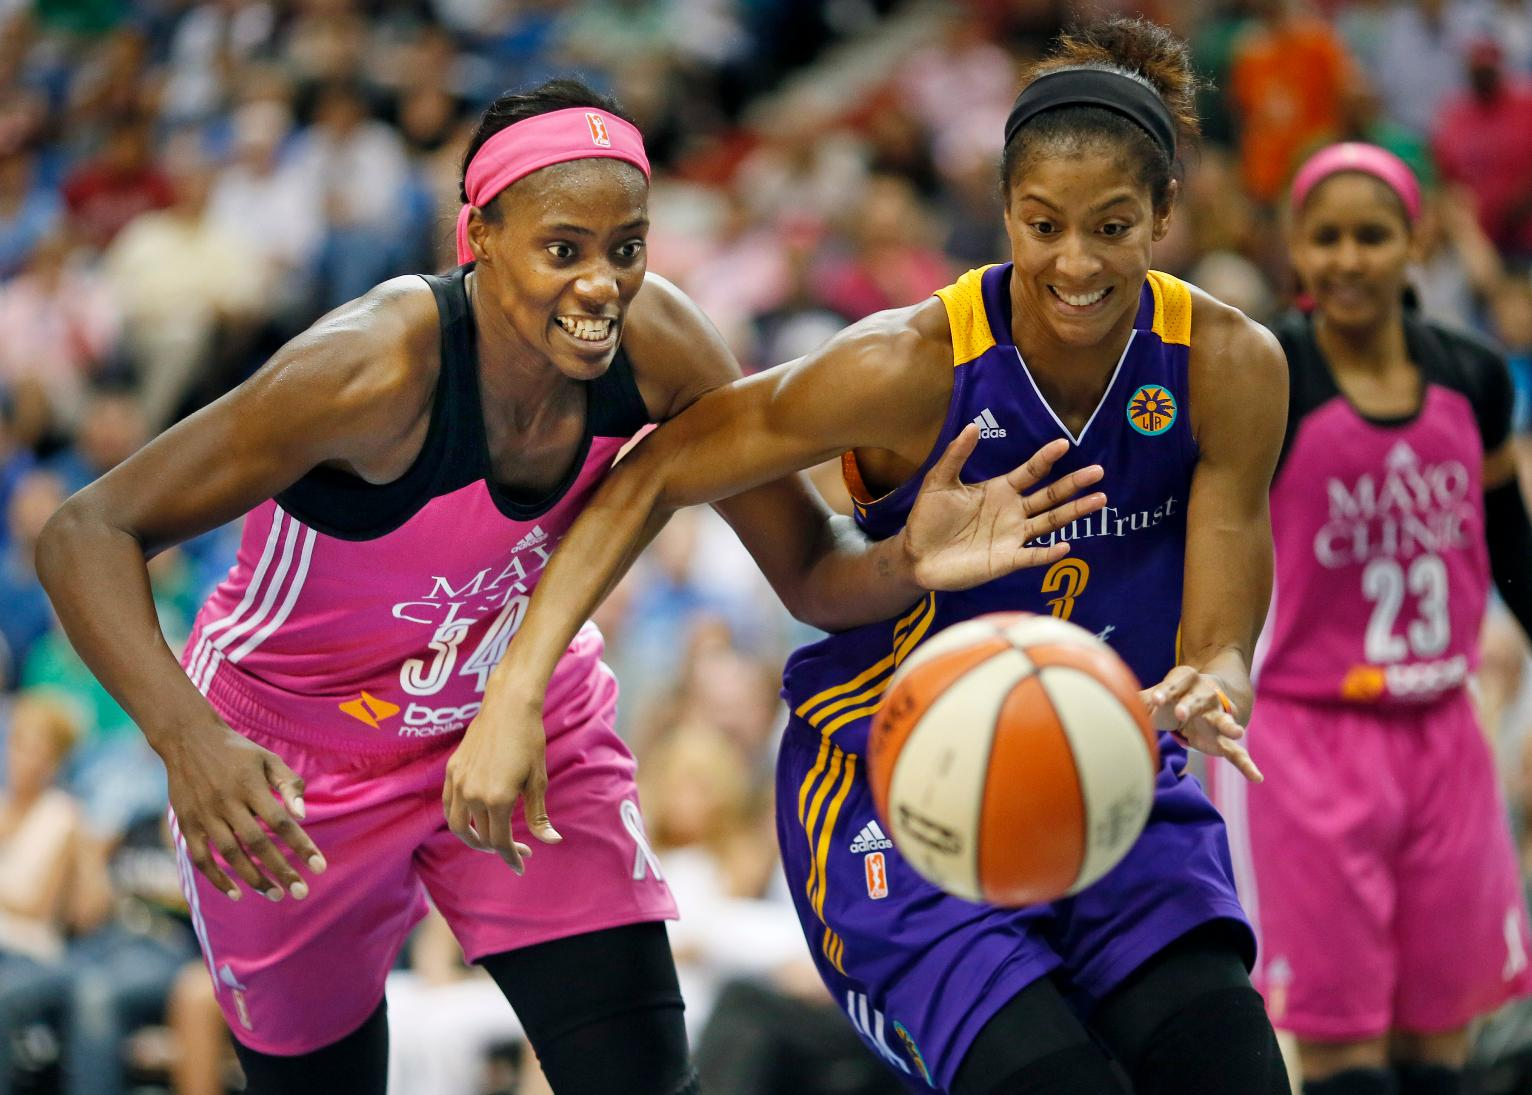 wnba vs nba The wnba is only in it's 11th season, and the nba, well, i don't know the abl failed, and so did many other women's basketball teams, but since the wnba is usually the sister team of a nba team, they lasted longer.